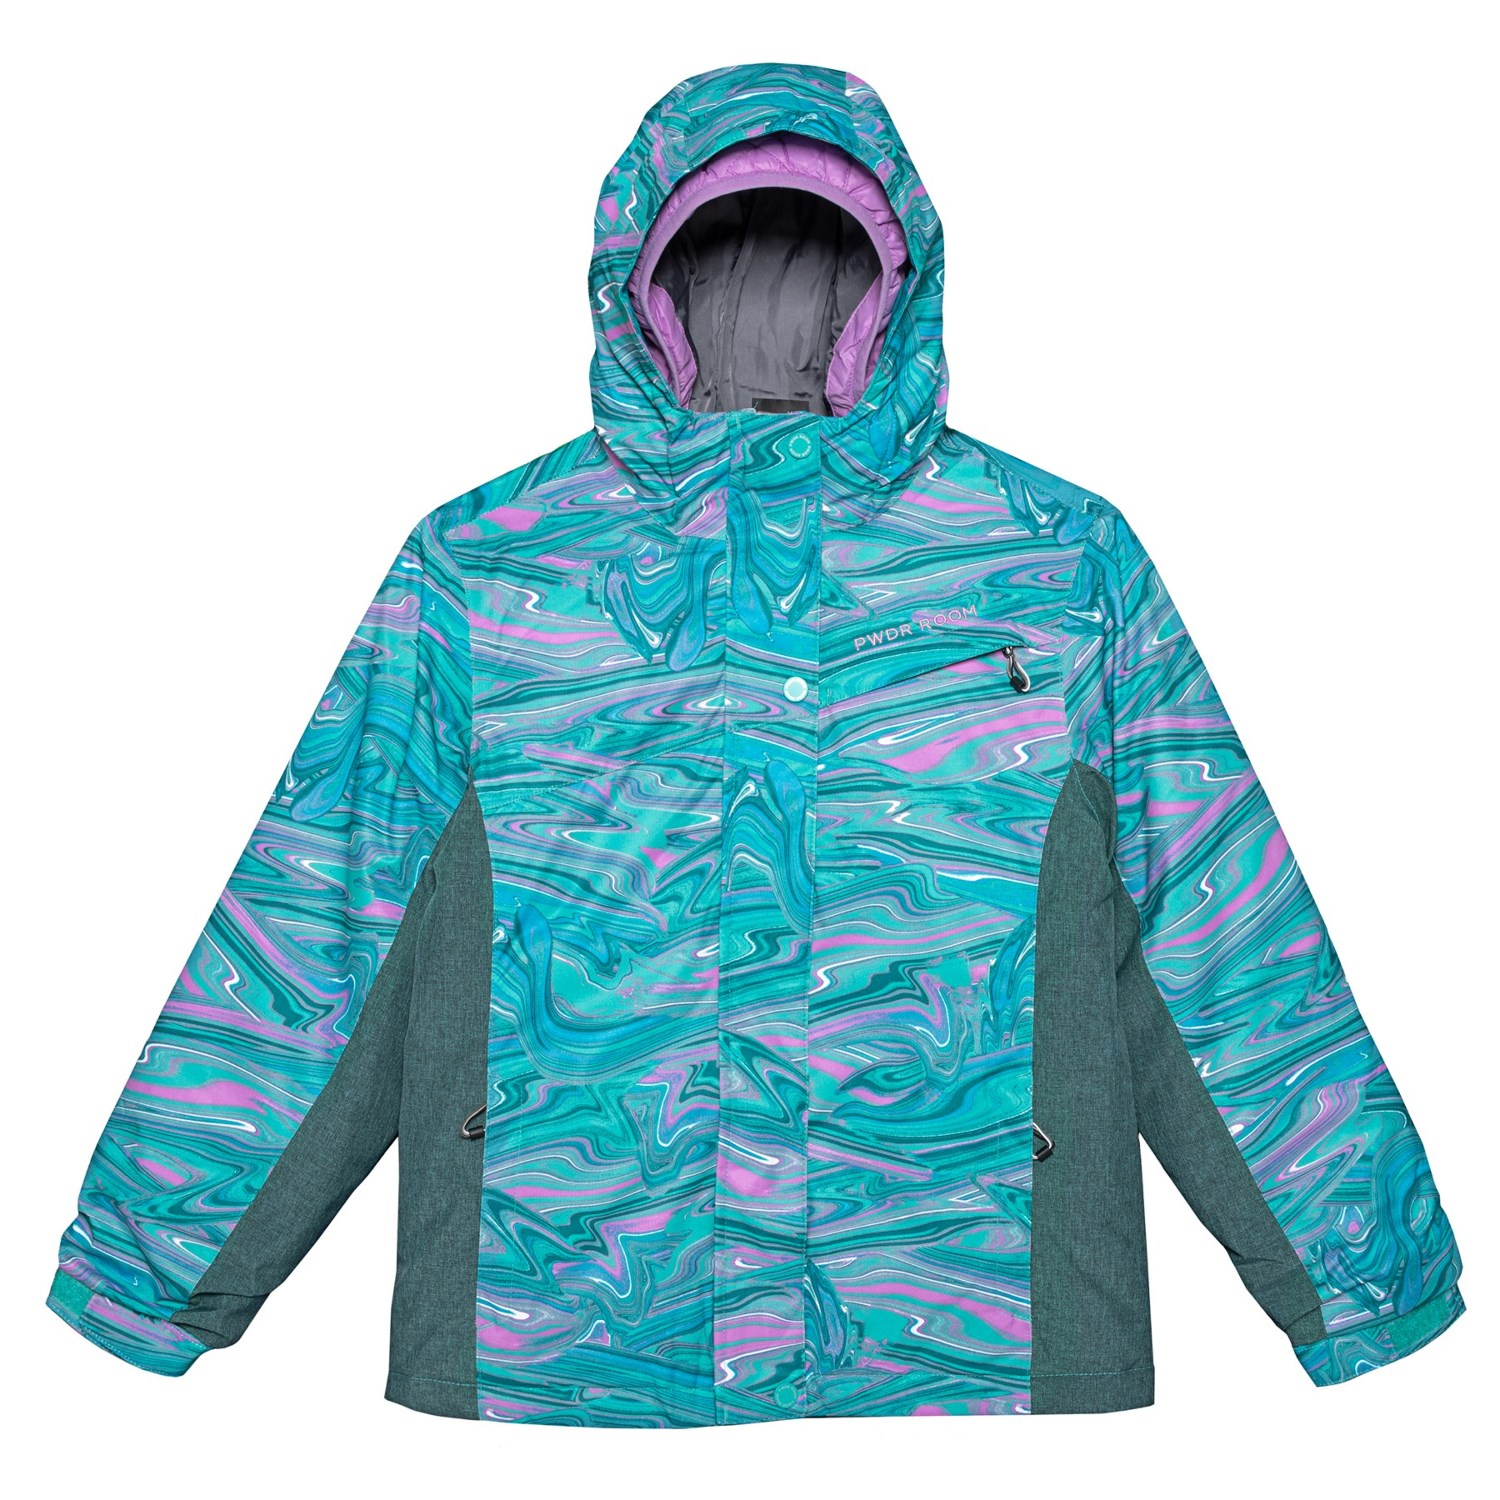 8a1354c24 PWDR Room Paris Ski Jacket - Waterproof, Insulated, 3-in-1 (For Big Girls)